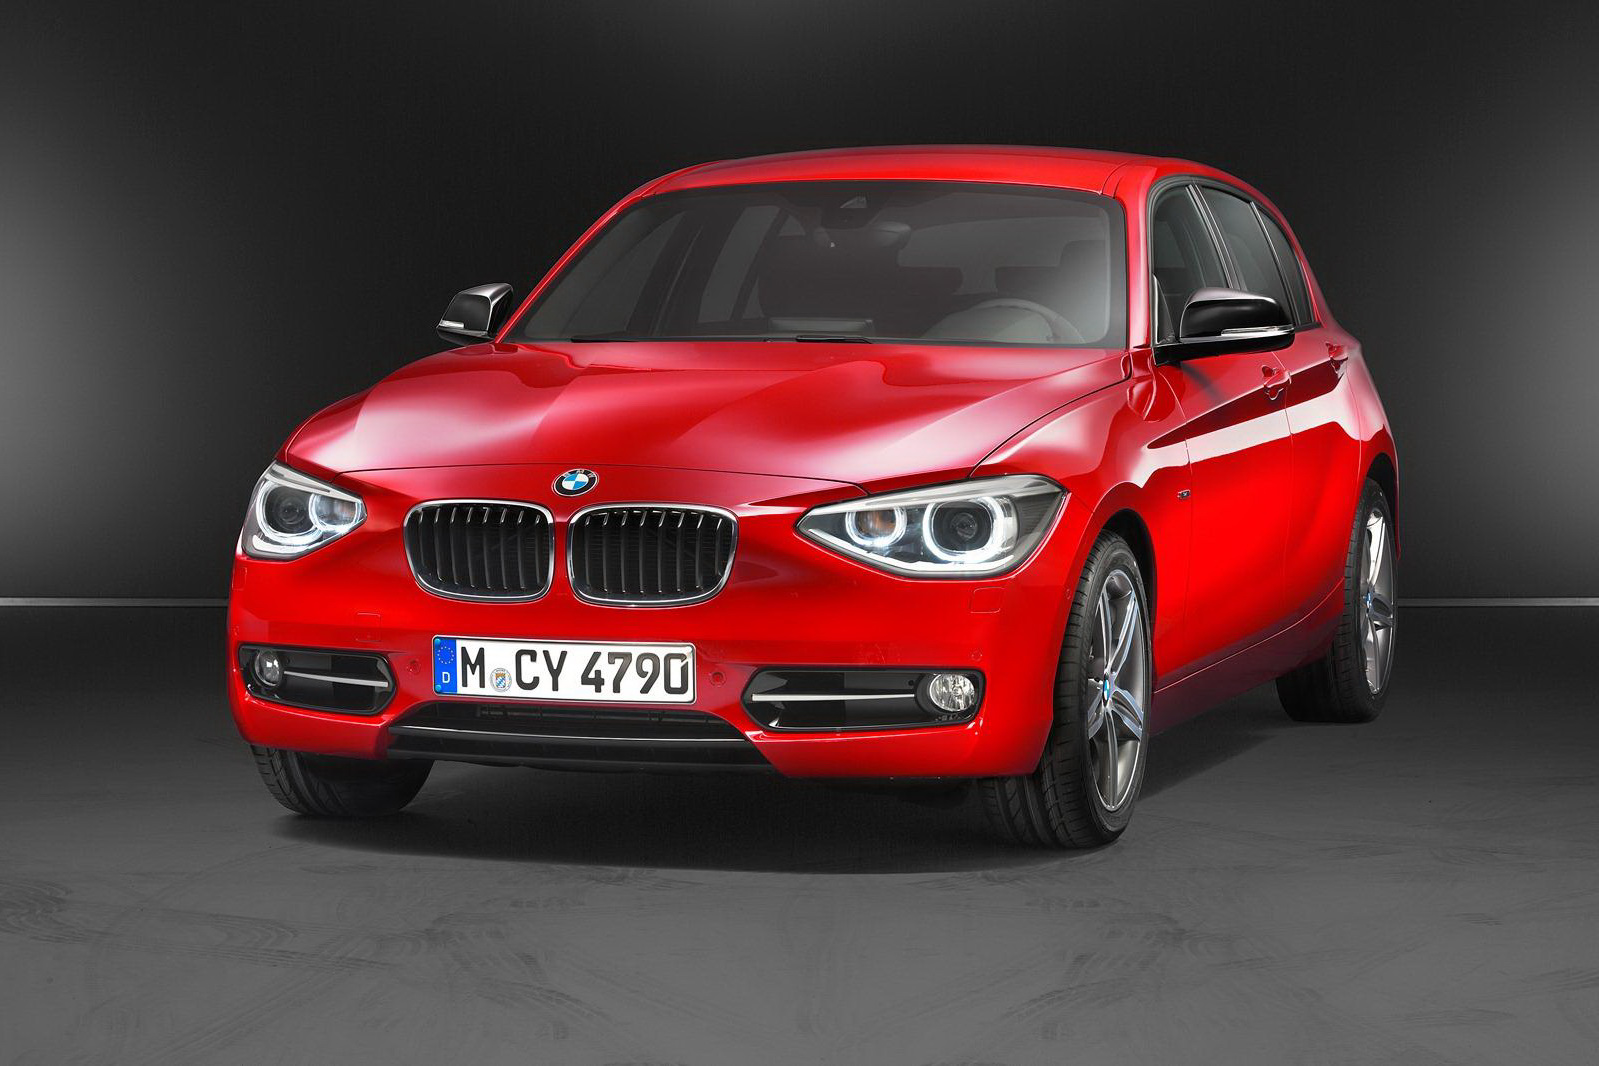 2012 bmw 1 series hatchback with 1 6 liter turbo gasoline engine. Black Bedroom Furniture Sets. Home Design Ideas